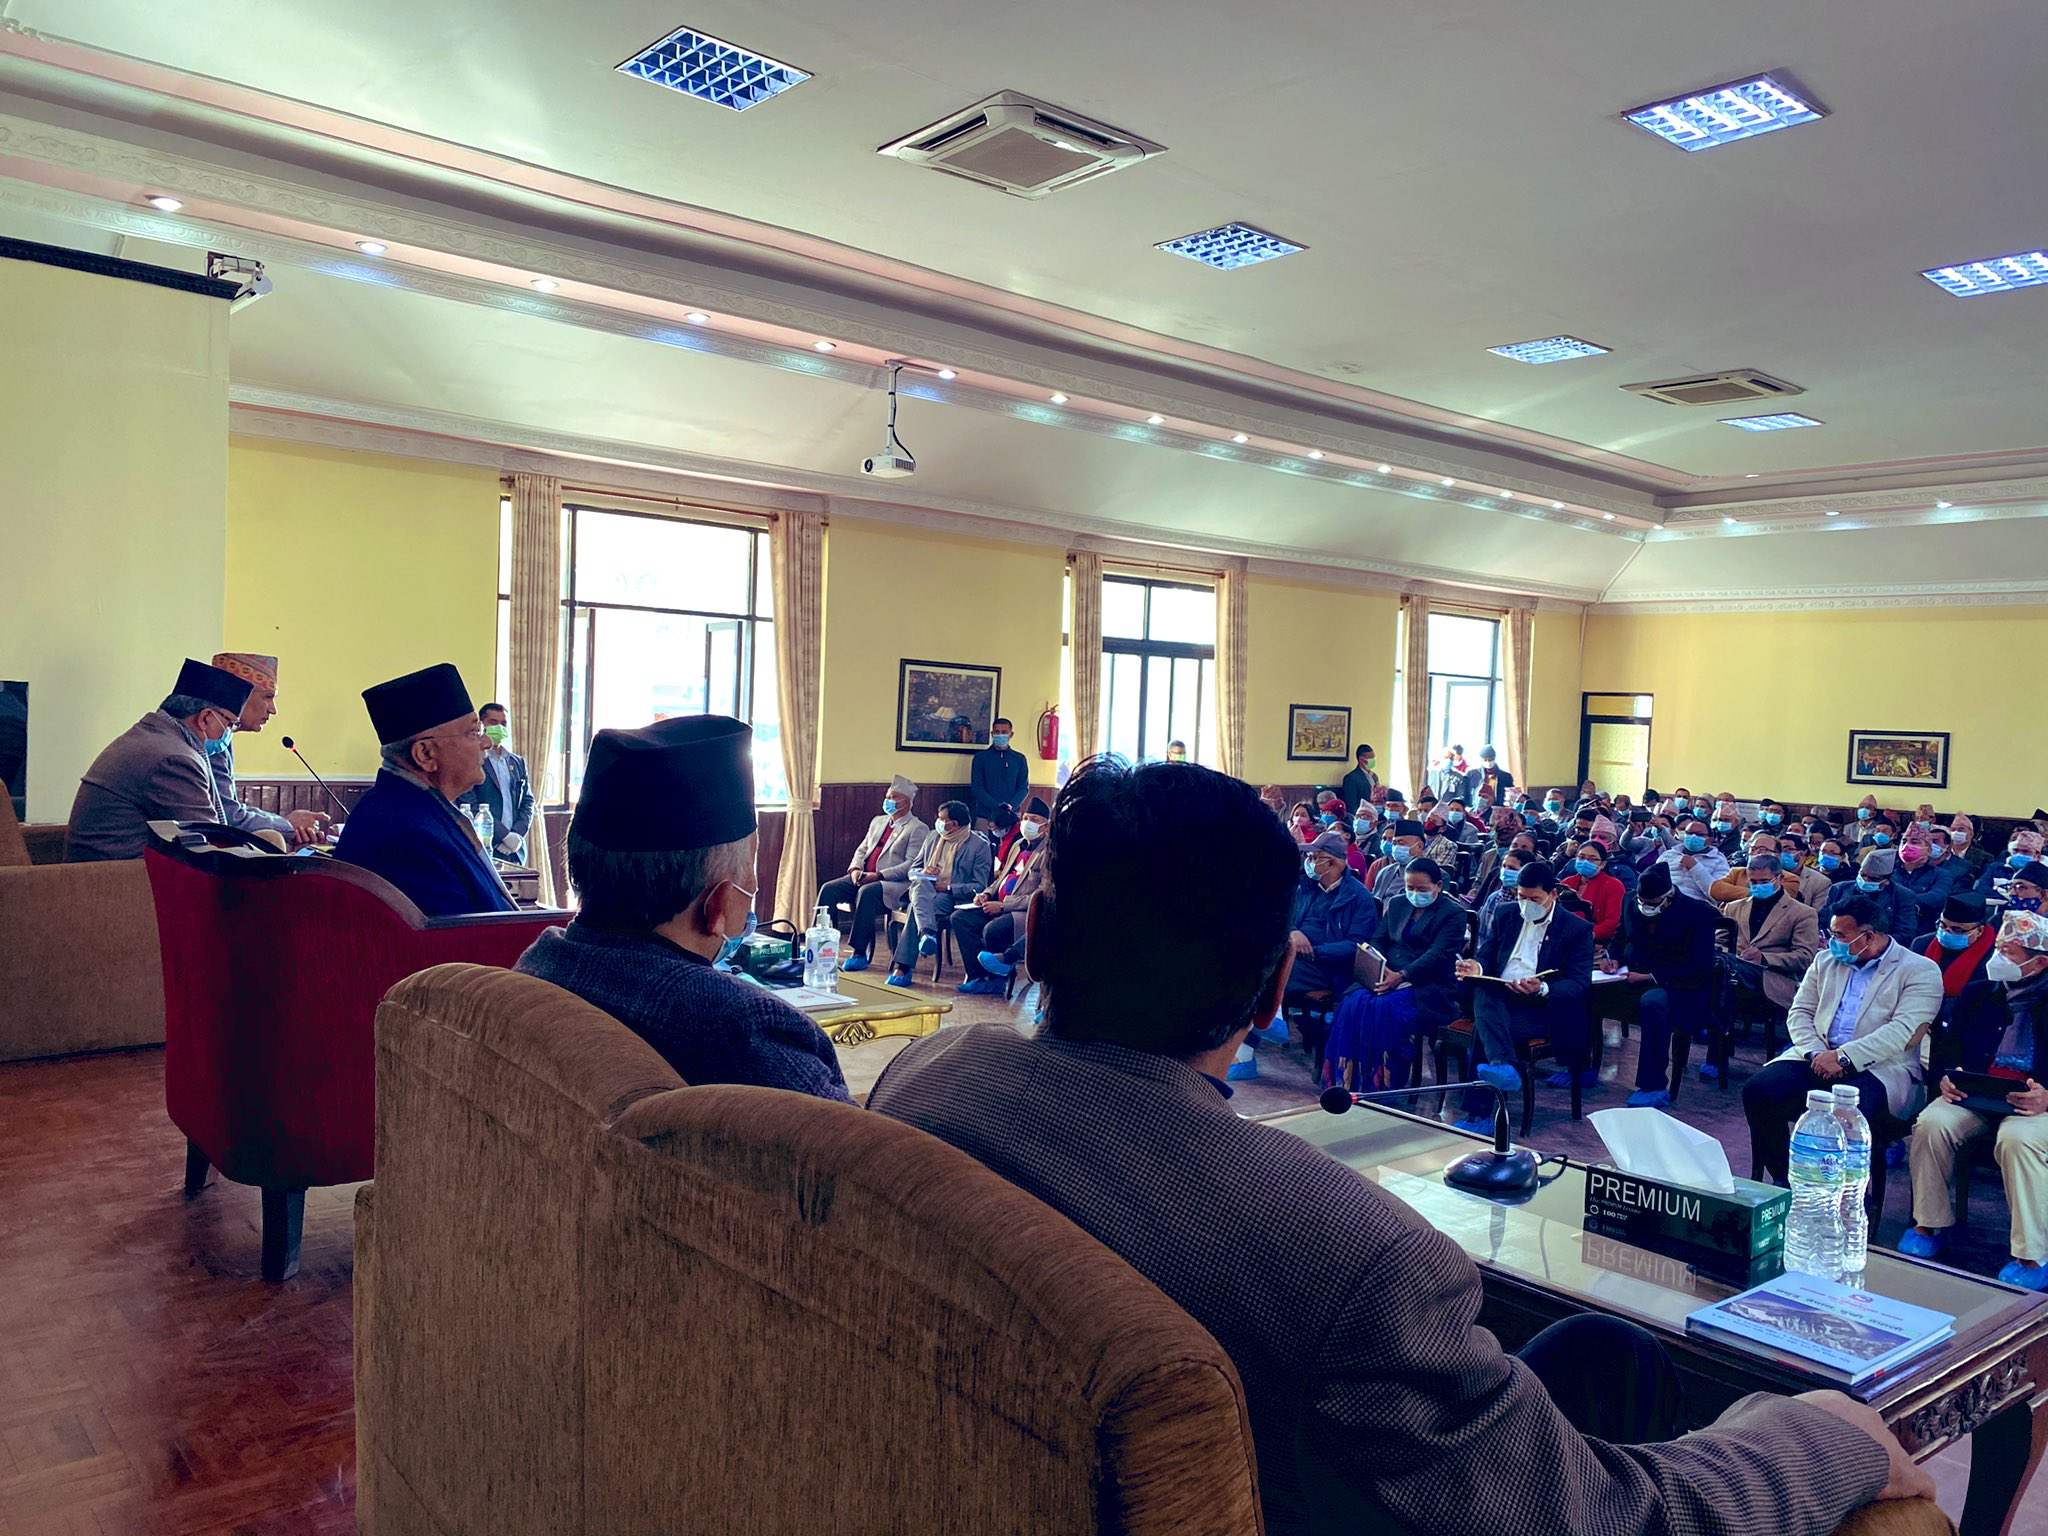 Central Committee meeting of the ruling Nepal Communist Party (NCP), called by co-chair Prime Minister KP Sharma Oli, underway at the PM's official residence in Baluwatar, Kathmandu, on Tuesday, December 22, 2020. Photo Courtesy: Bishnu Rimal/Twitter